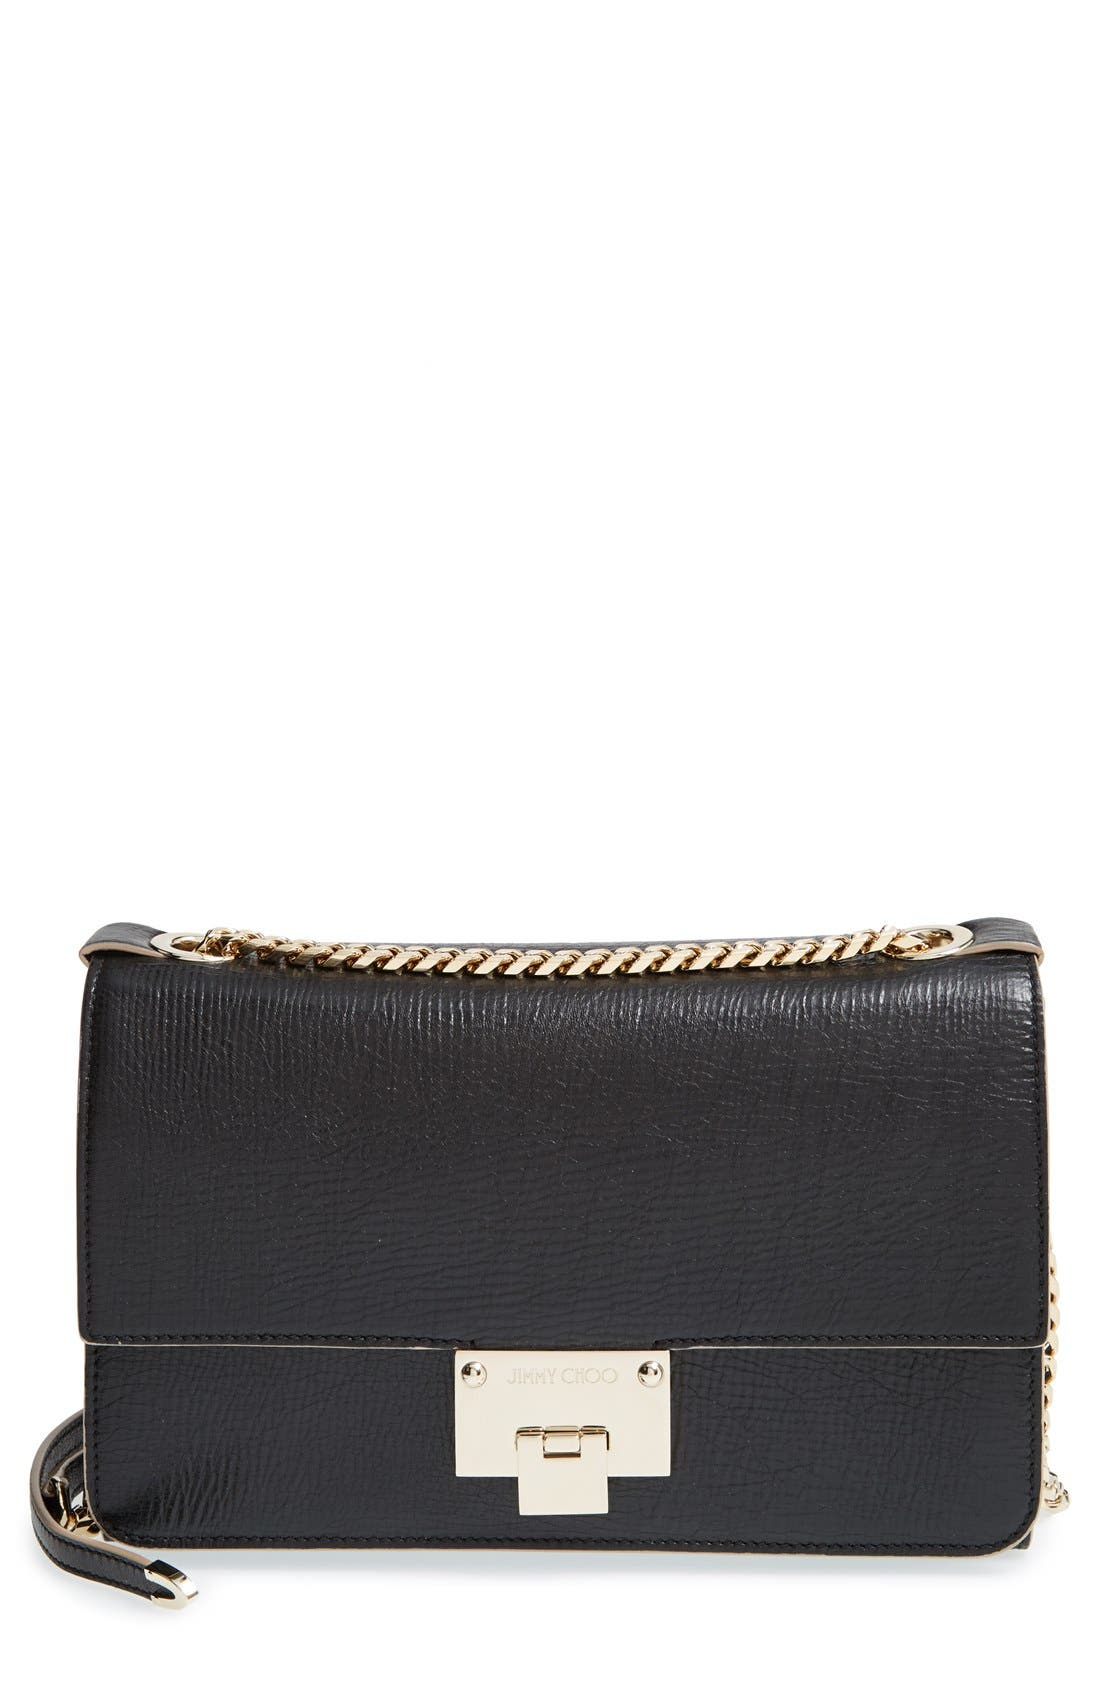 Alternate Image 1 Selected - Jimmy Choo 'Rebel' Washed Leather Shoulder Bag